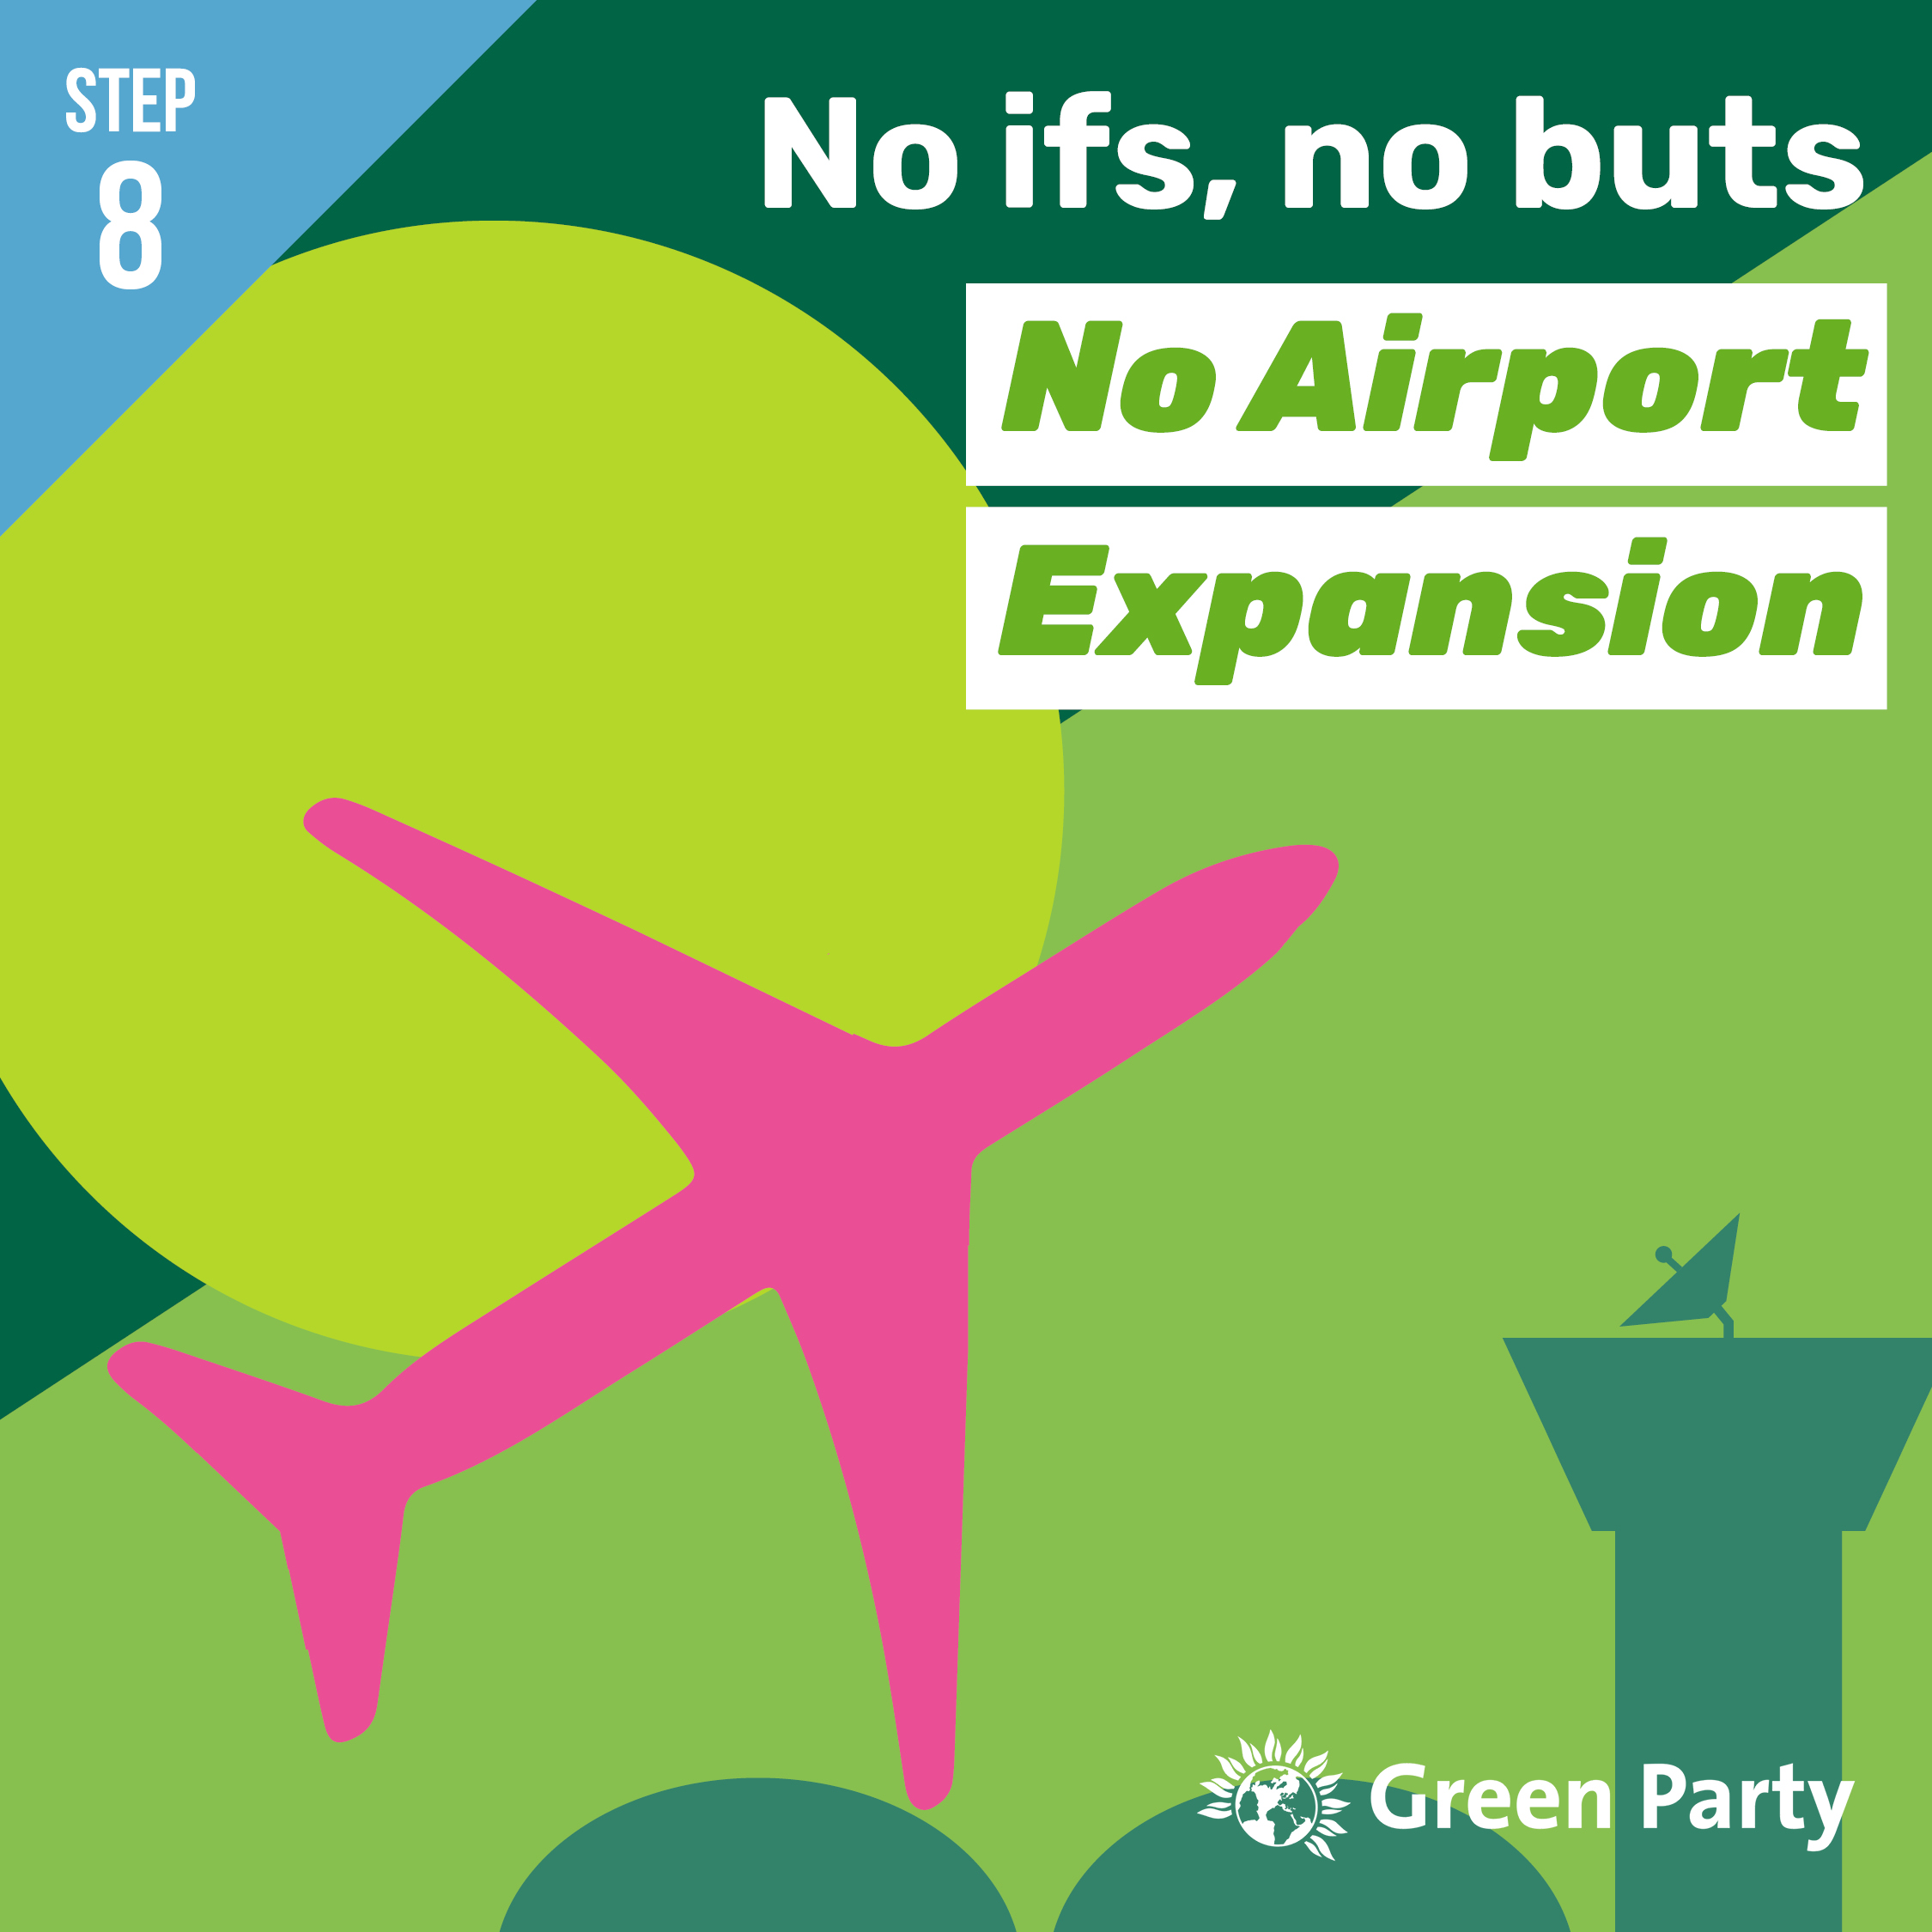 Step 8 - No Airport Expansion [Facebook & Instagram]